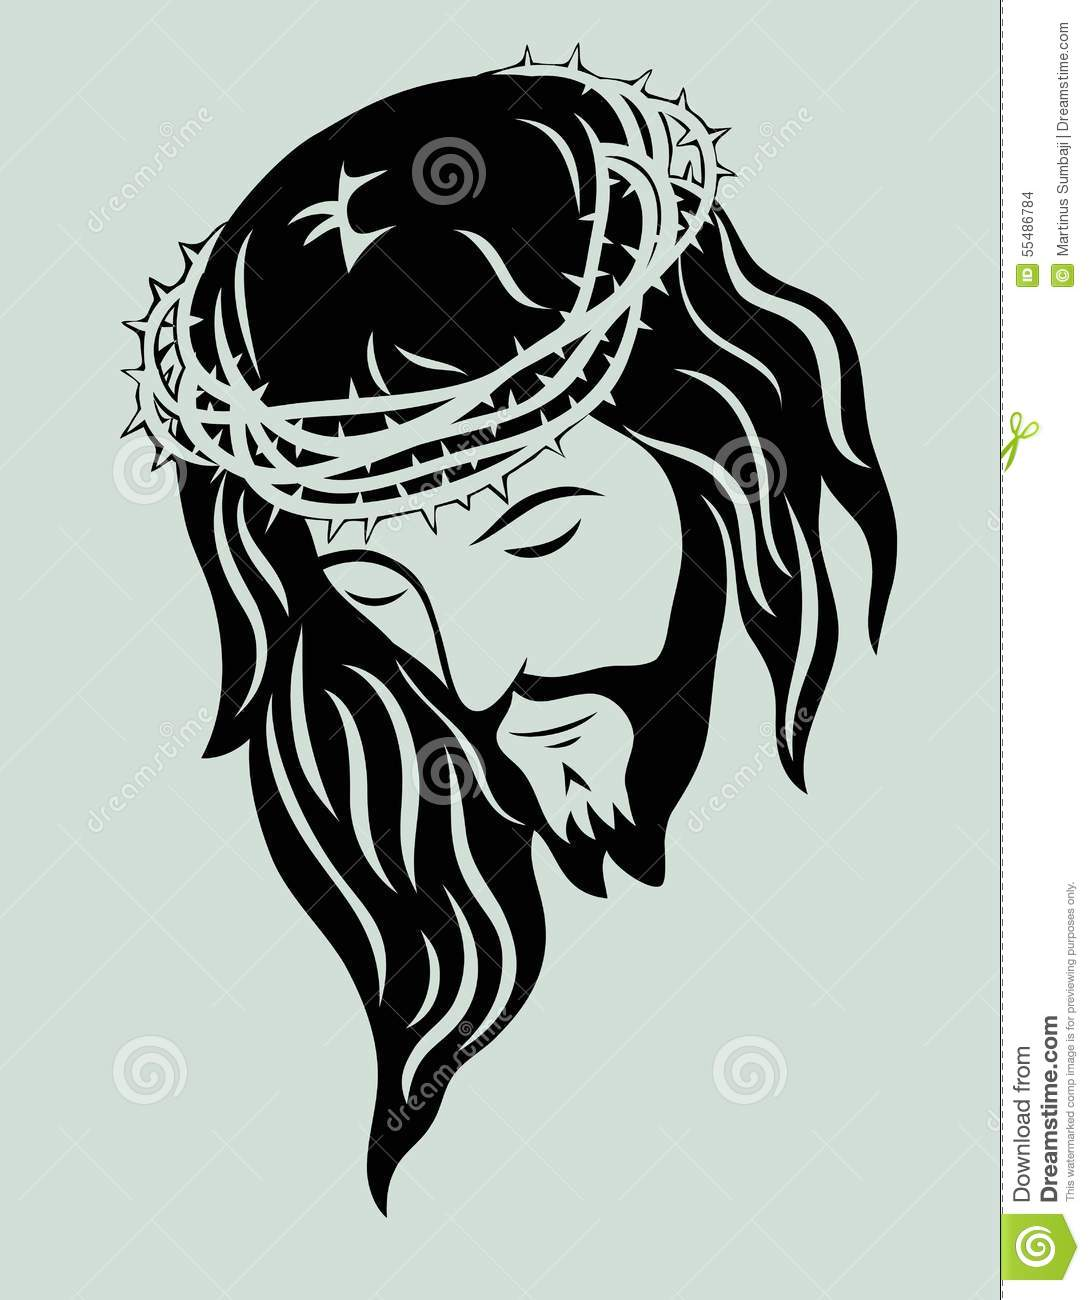 Jesus Christ Face Stock Vector - Image: 55486784